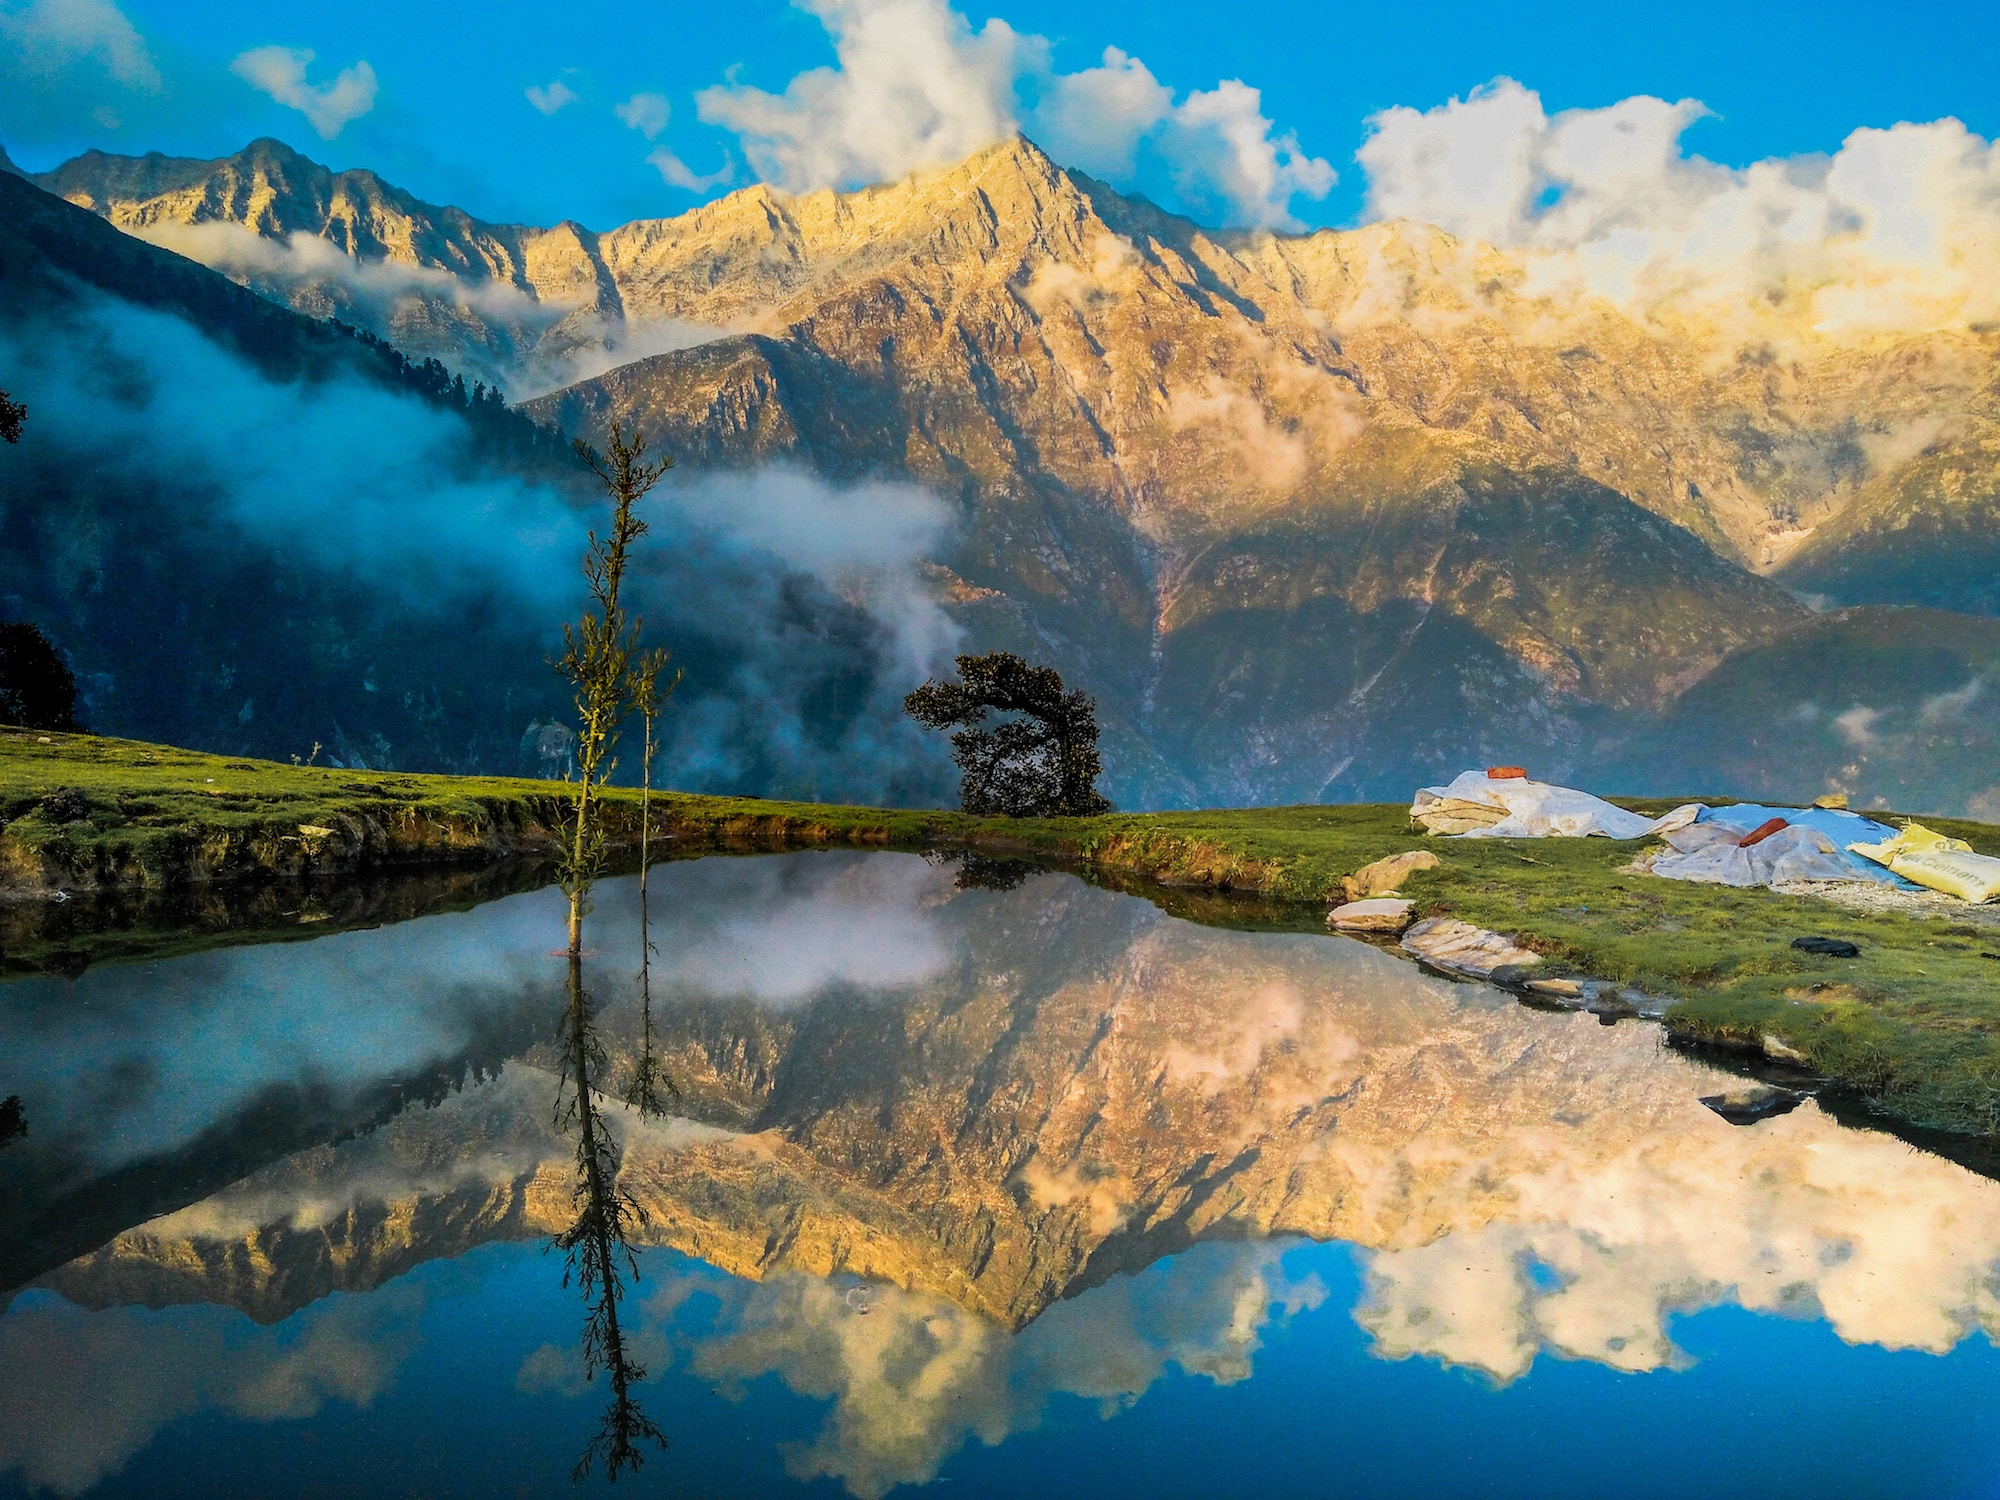 Mountains reflected in a lake in India